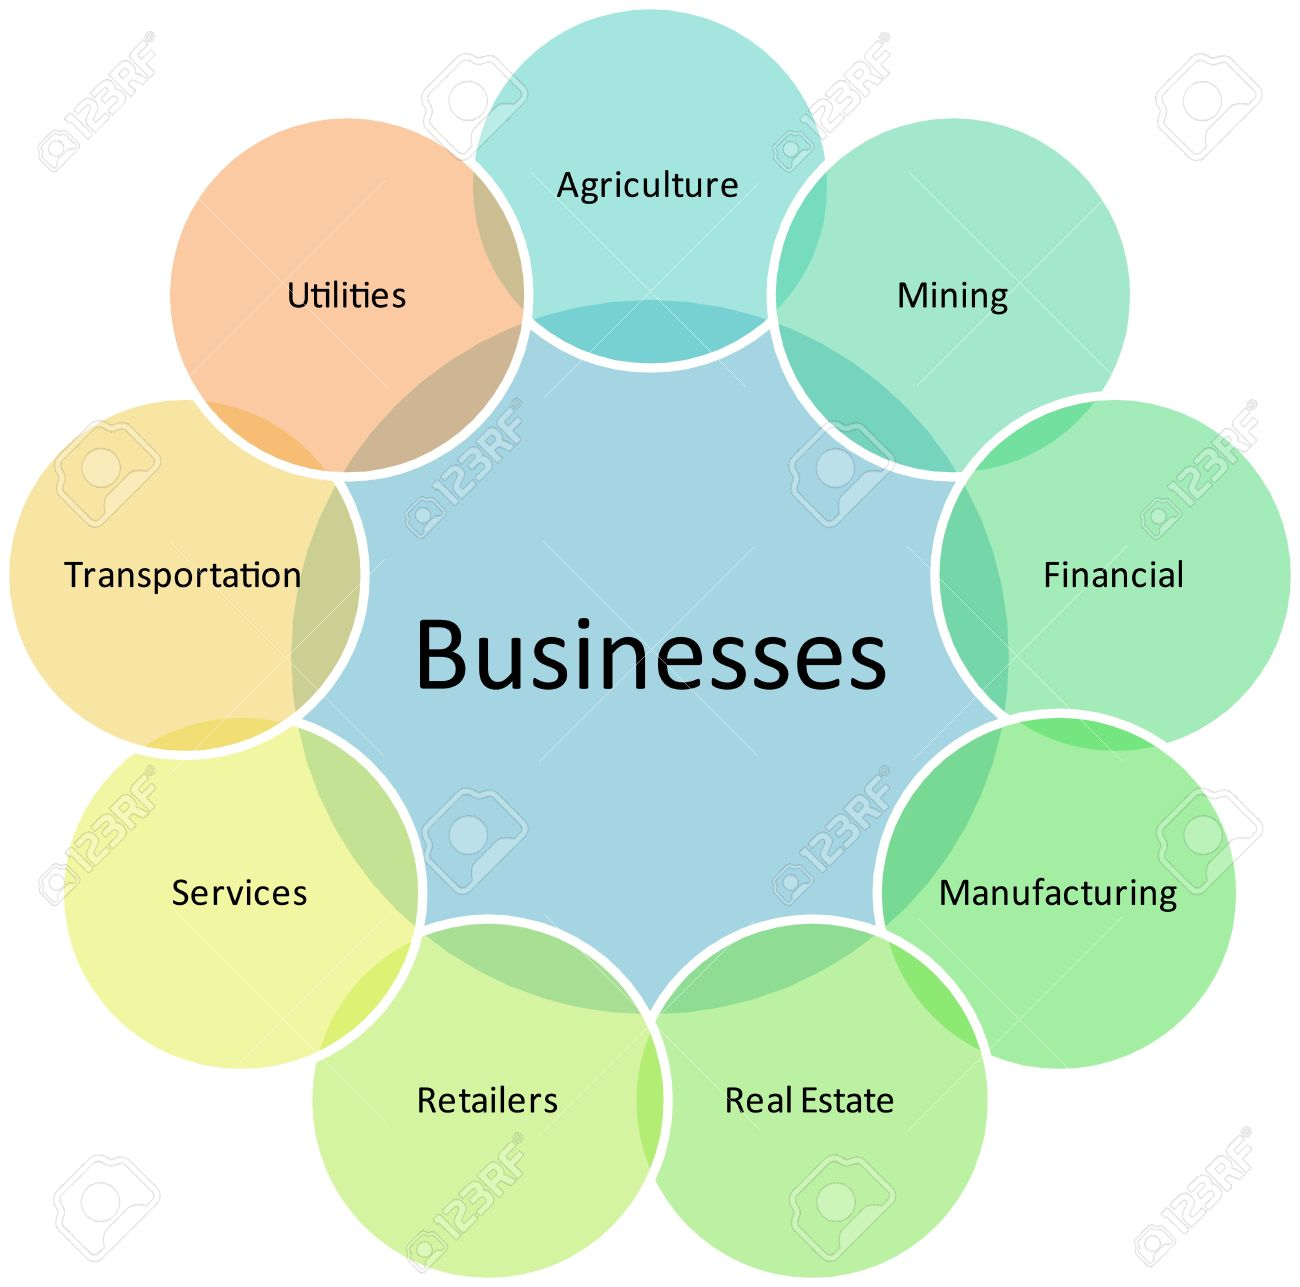 business types diagram management strategy concept chart    illustration   business types diagram management strategy concept chart illustration